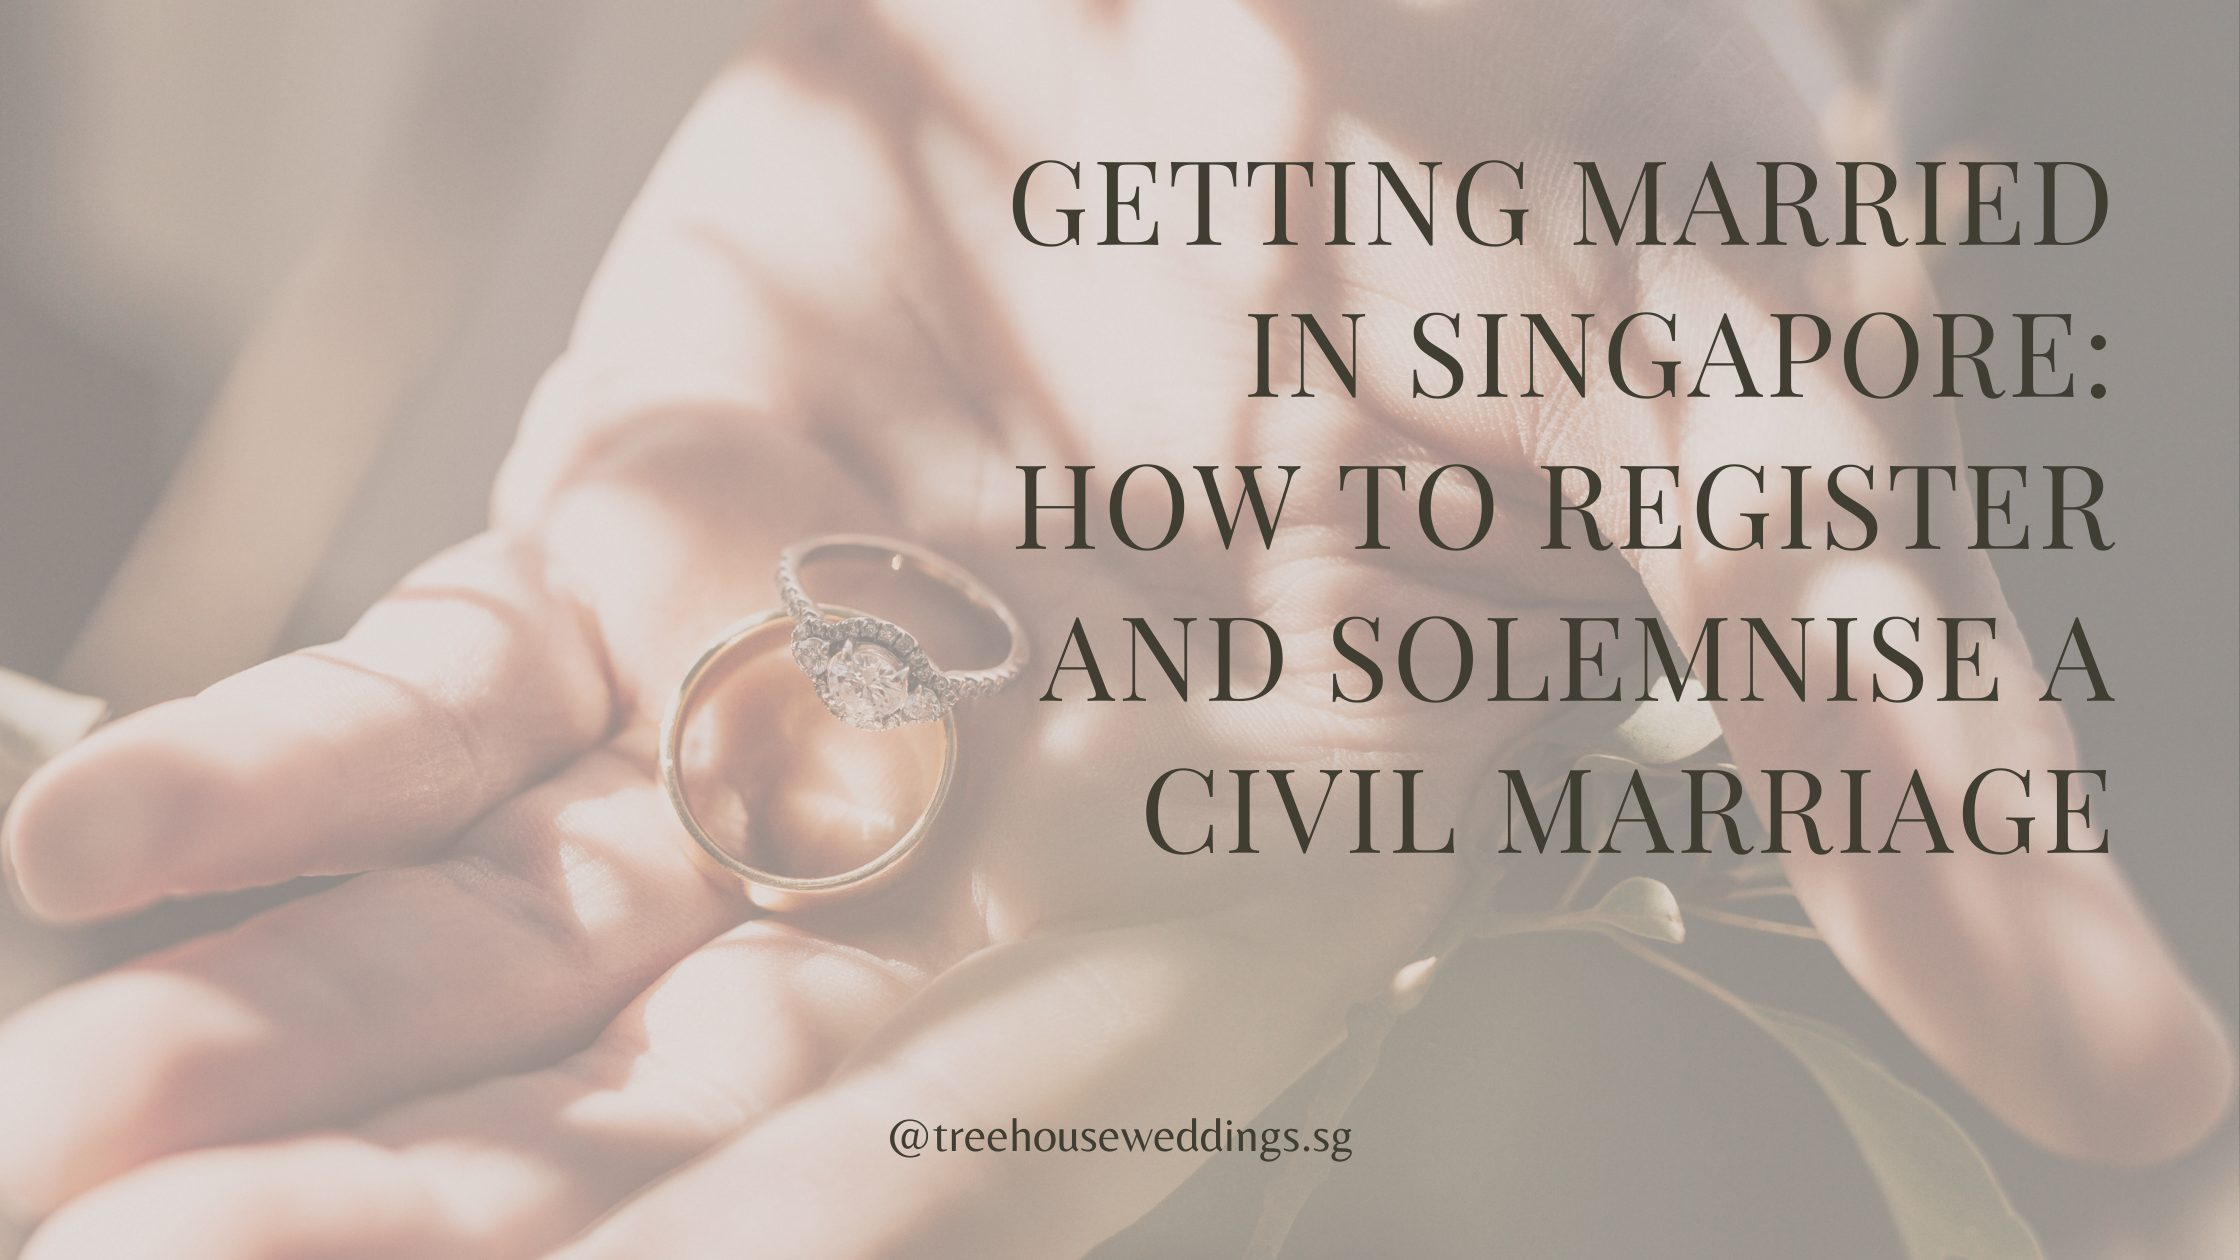 Blog post: Step-by-step guide on getting married in Singapore